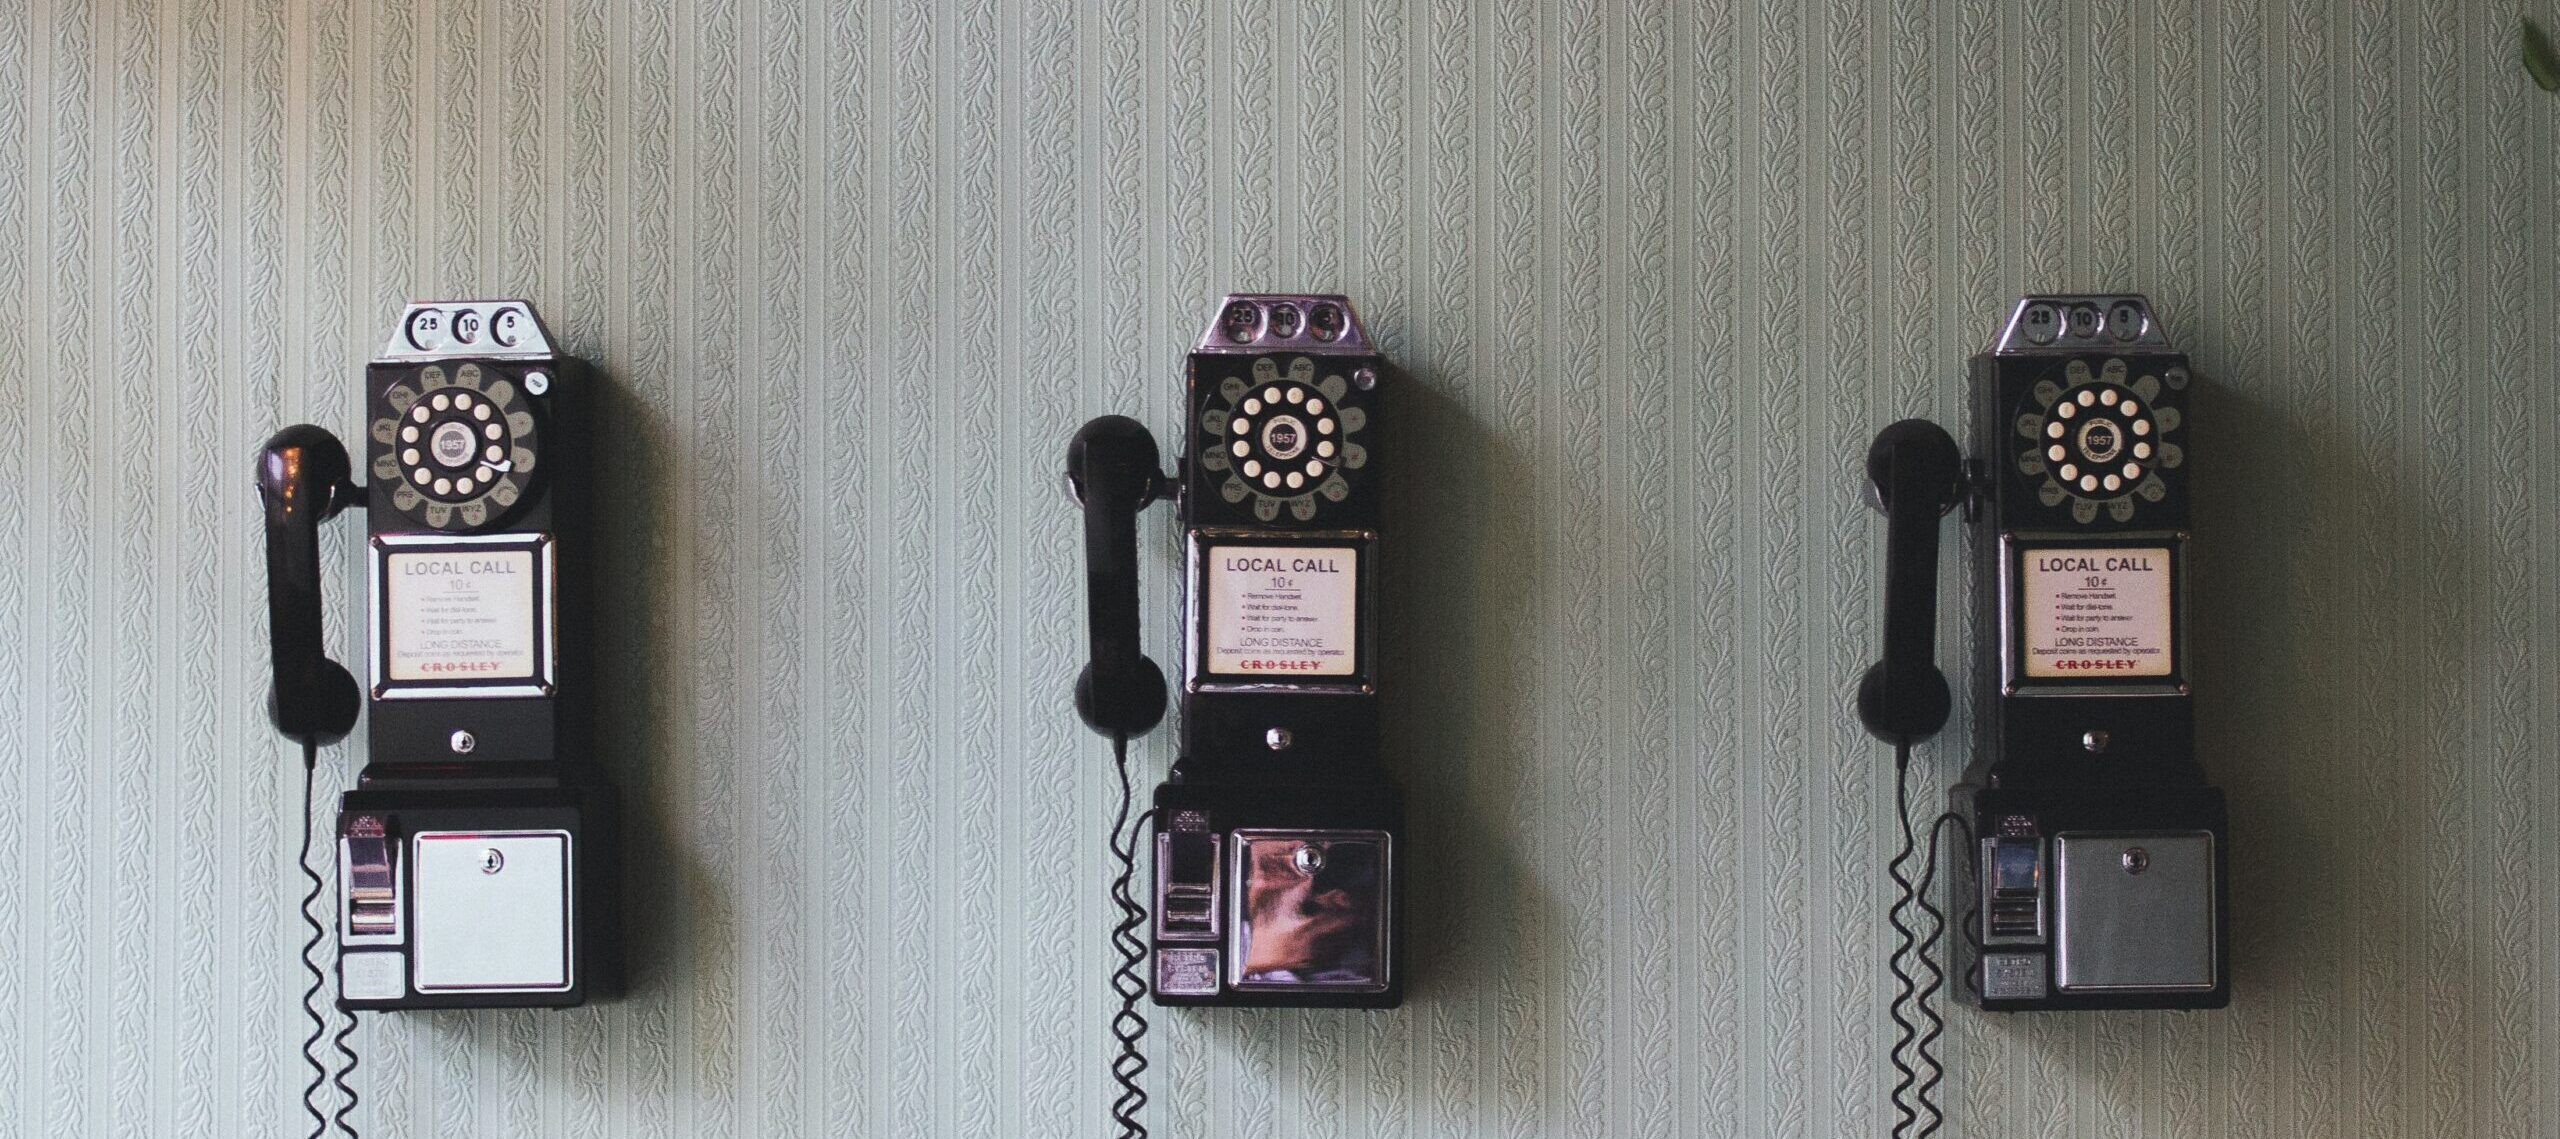 Vintage pay phone - Rachel Writes contact page